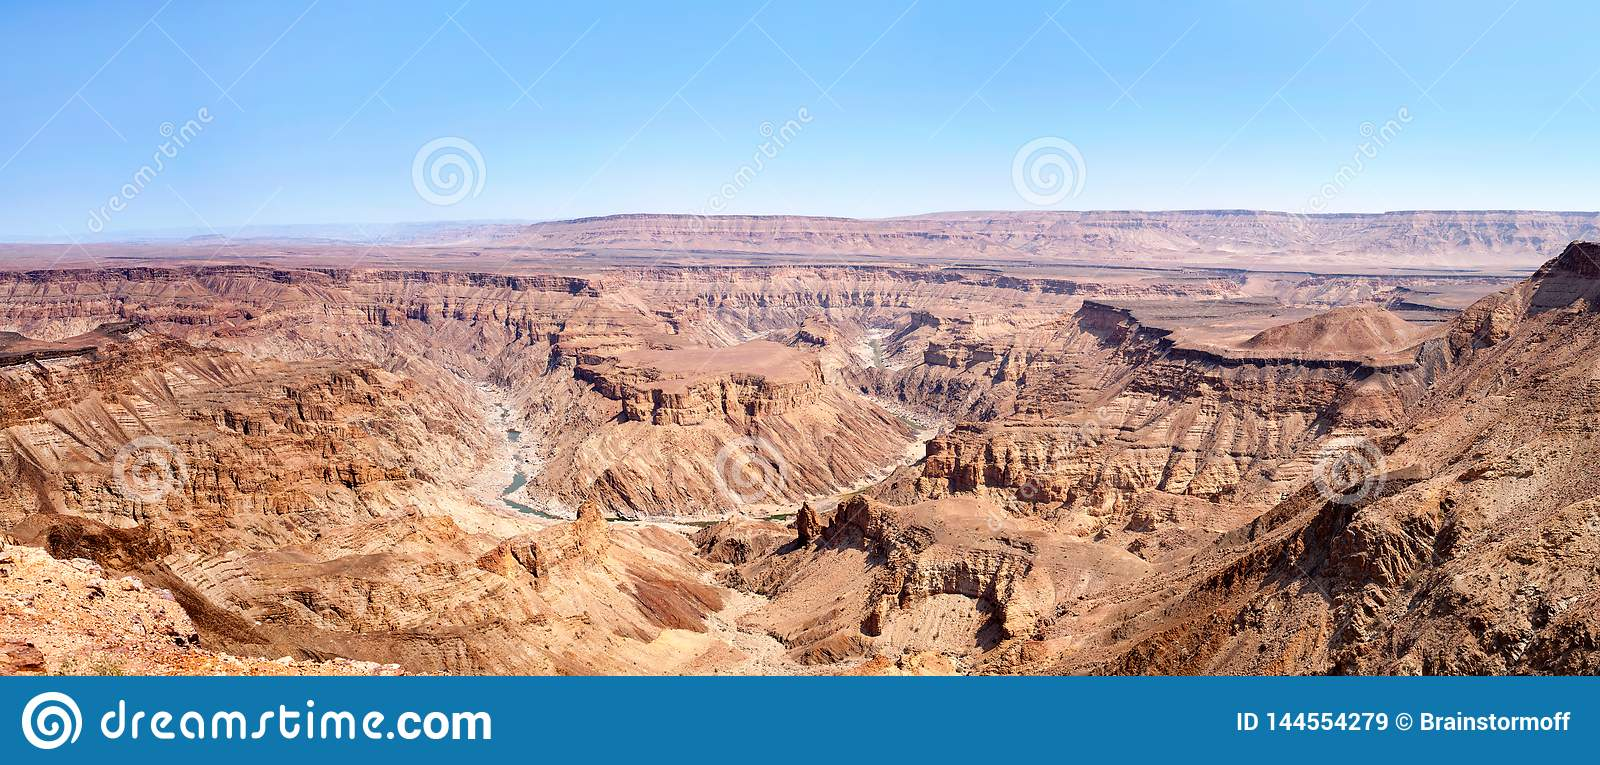 Fish River Canyon during the dry season top view, beautiful scenic mountain landscape panorama in Southern Africa, Namibia